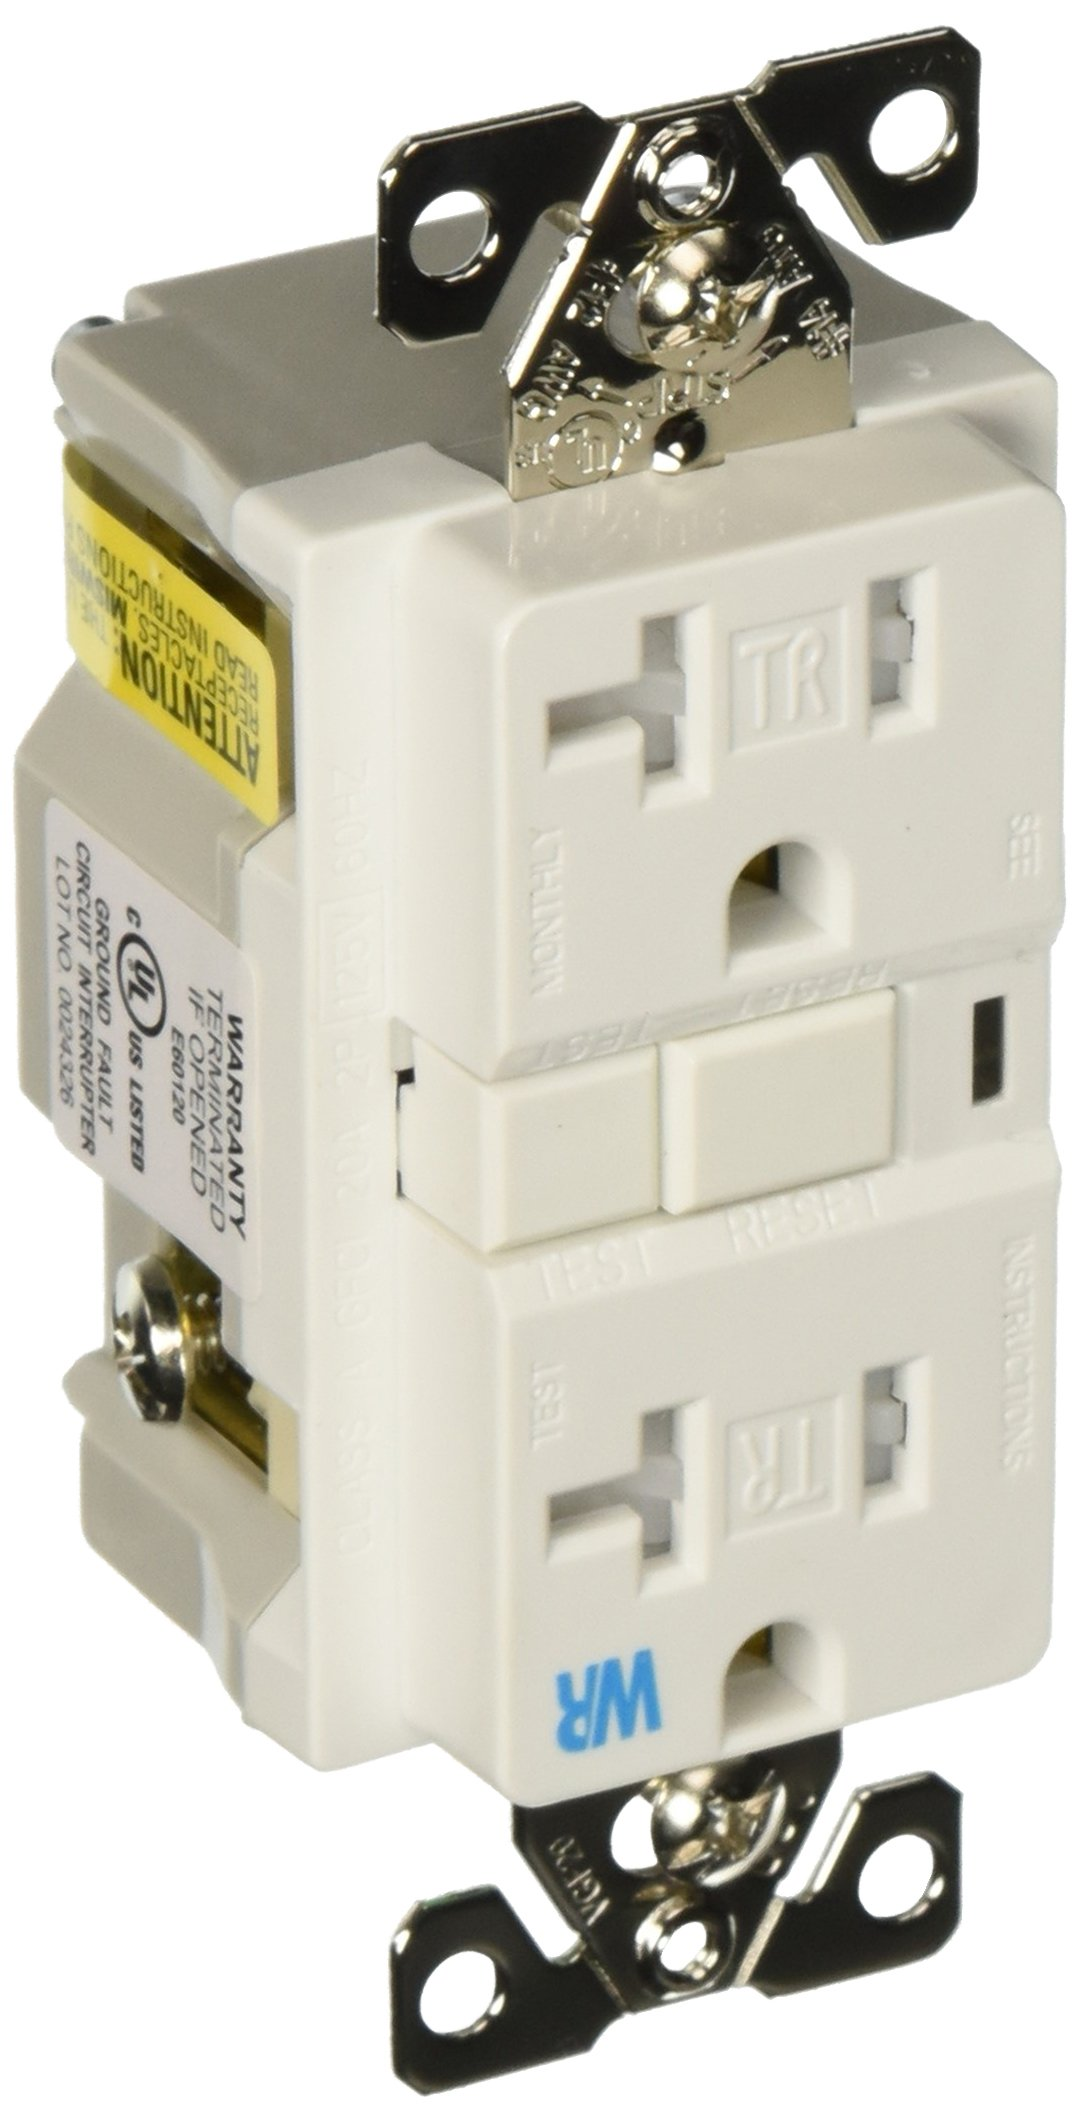 Cheap Ground Weather Find Deals On Line At Alibabacom An Overview Of Gfci Groundfault Circuit Interrupter Eep Get Quotations The Eaton Twrvgf20w Sp 20 Amp 2 Pole 3 Wire 125